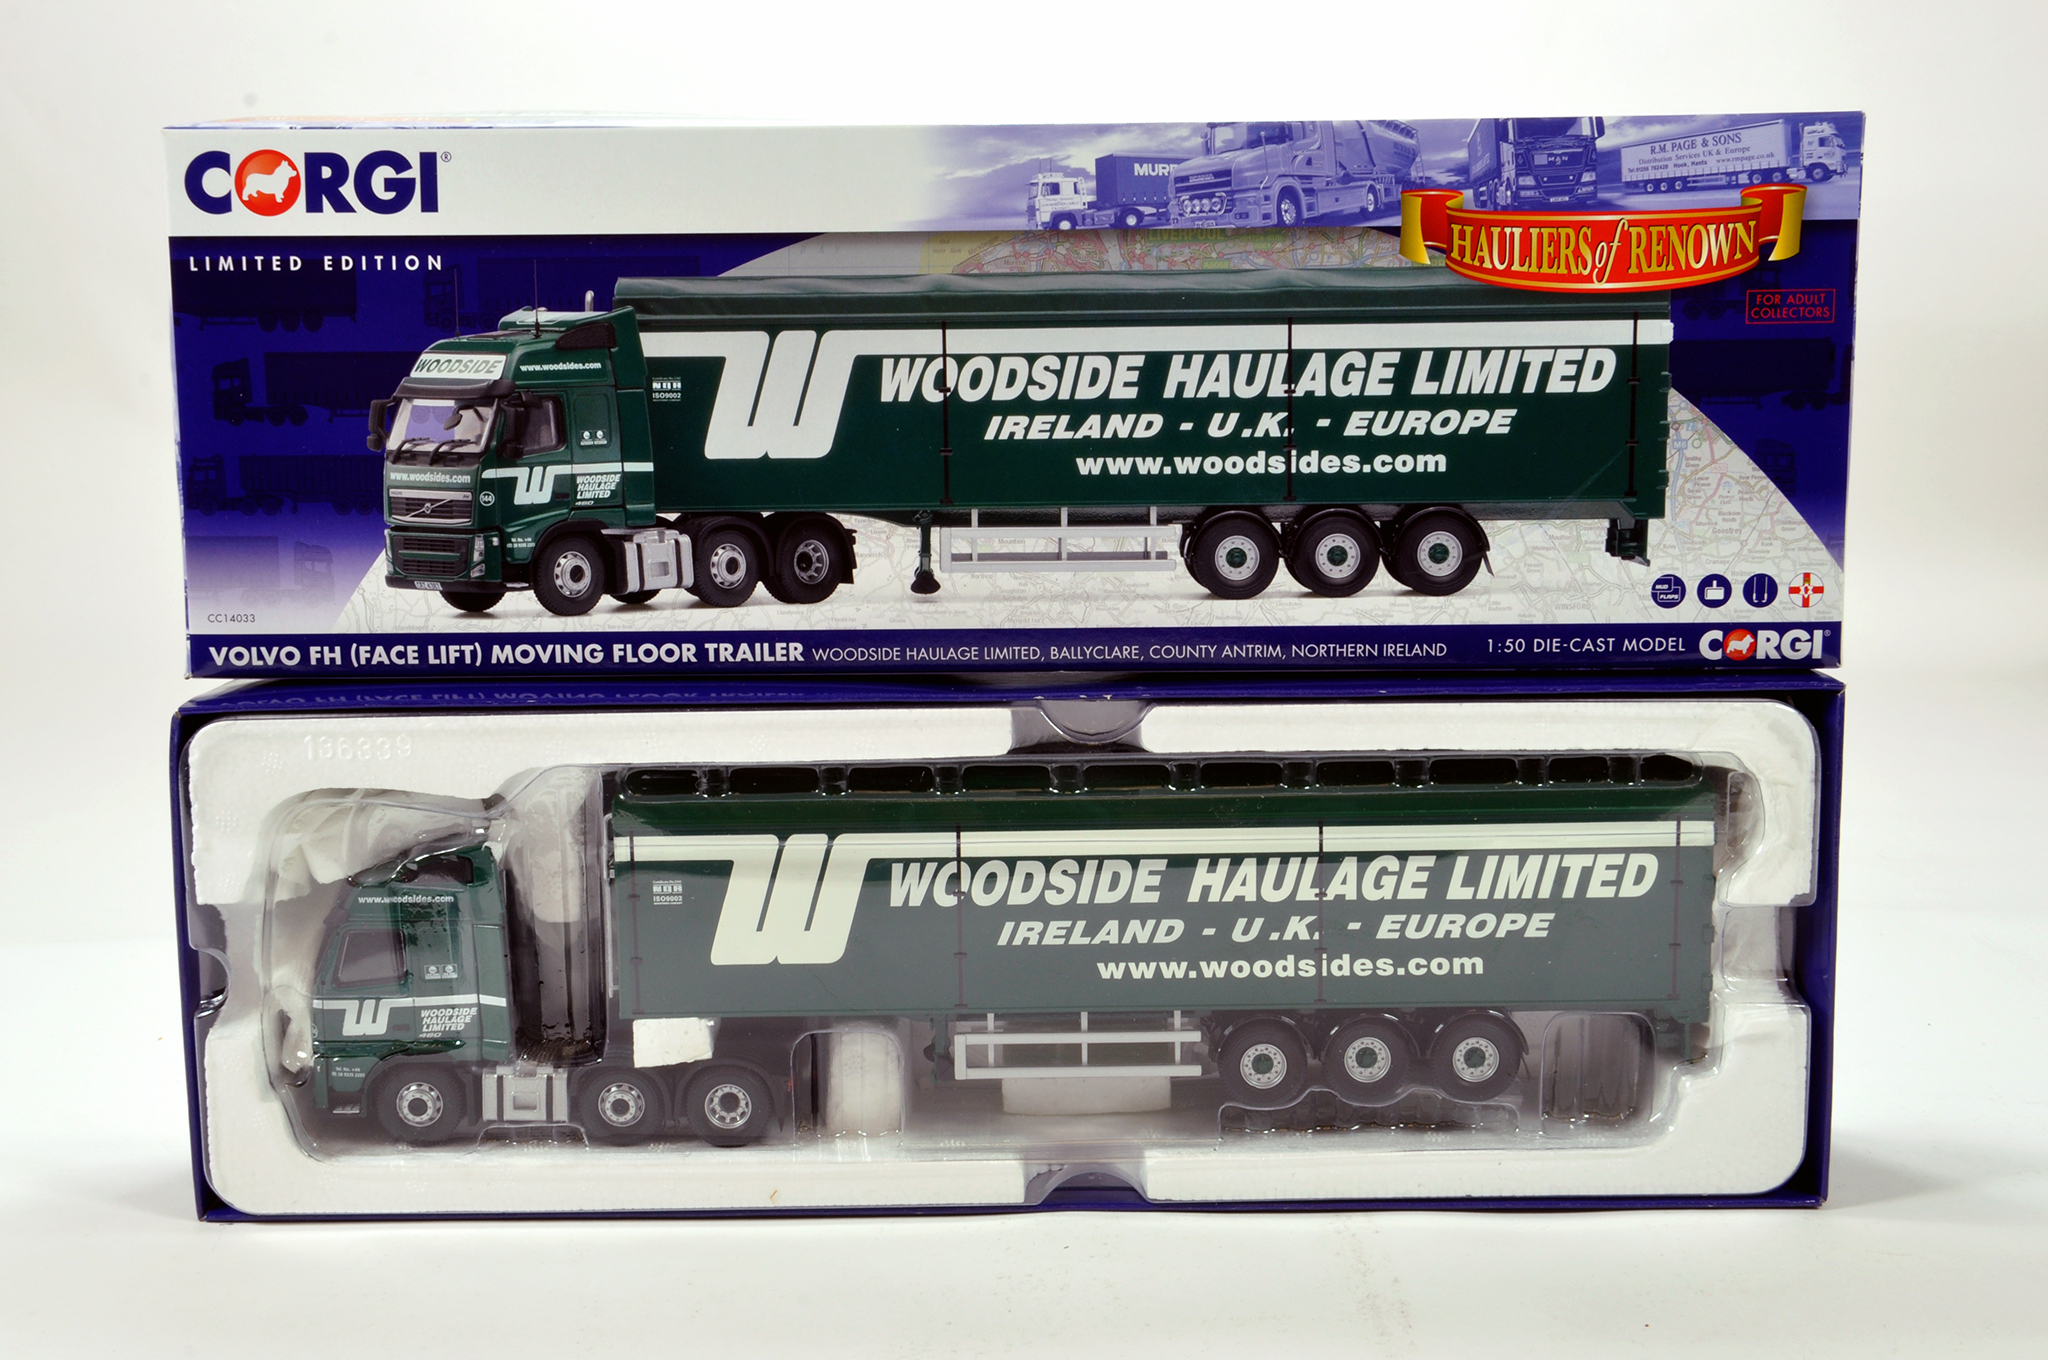 Lot 4 - Corgi 1/50 diecast truck issue comprising No. CC14033 Volvo FH Moving Floor Trailer in livery of